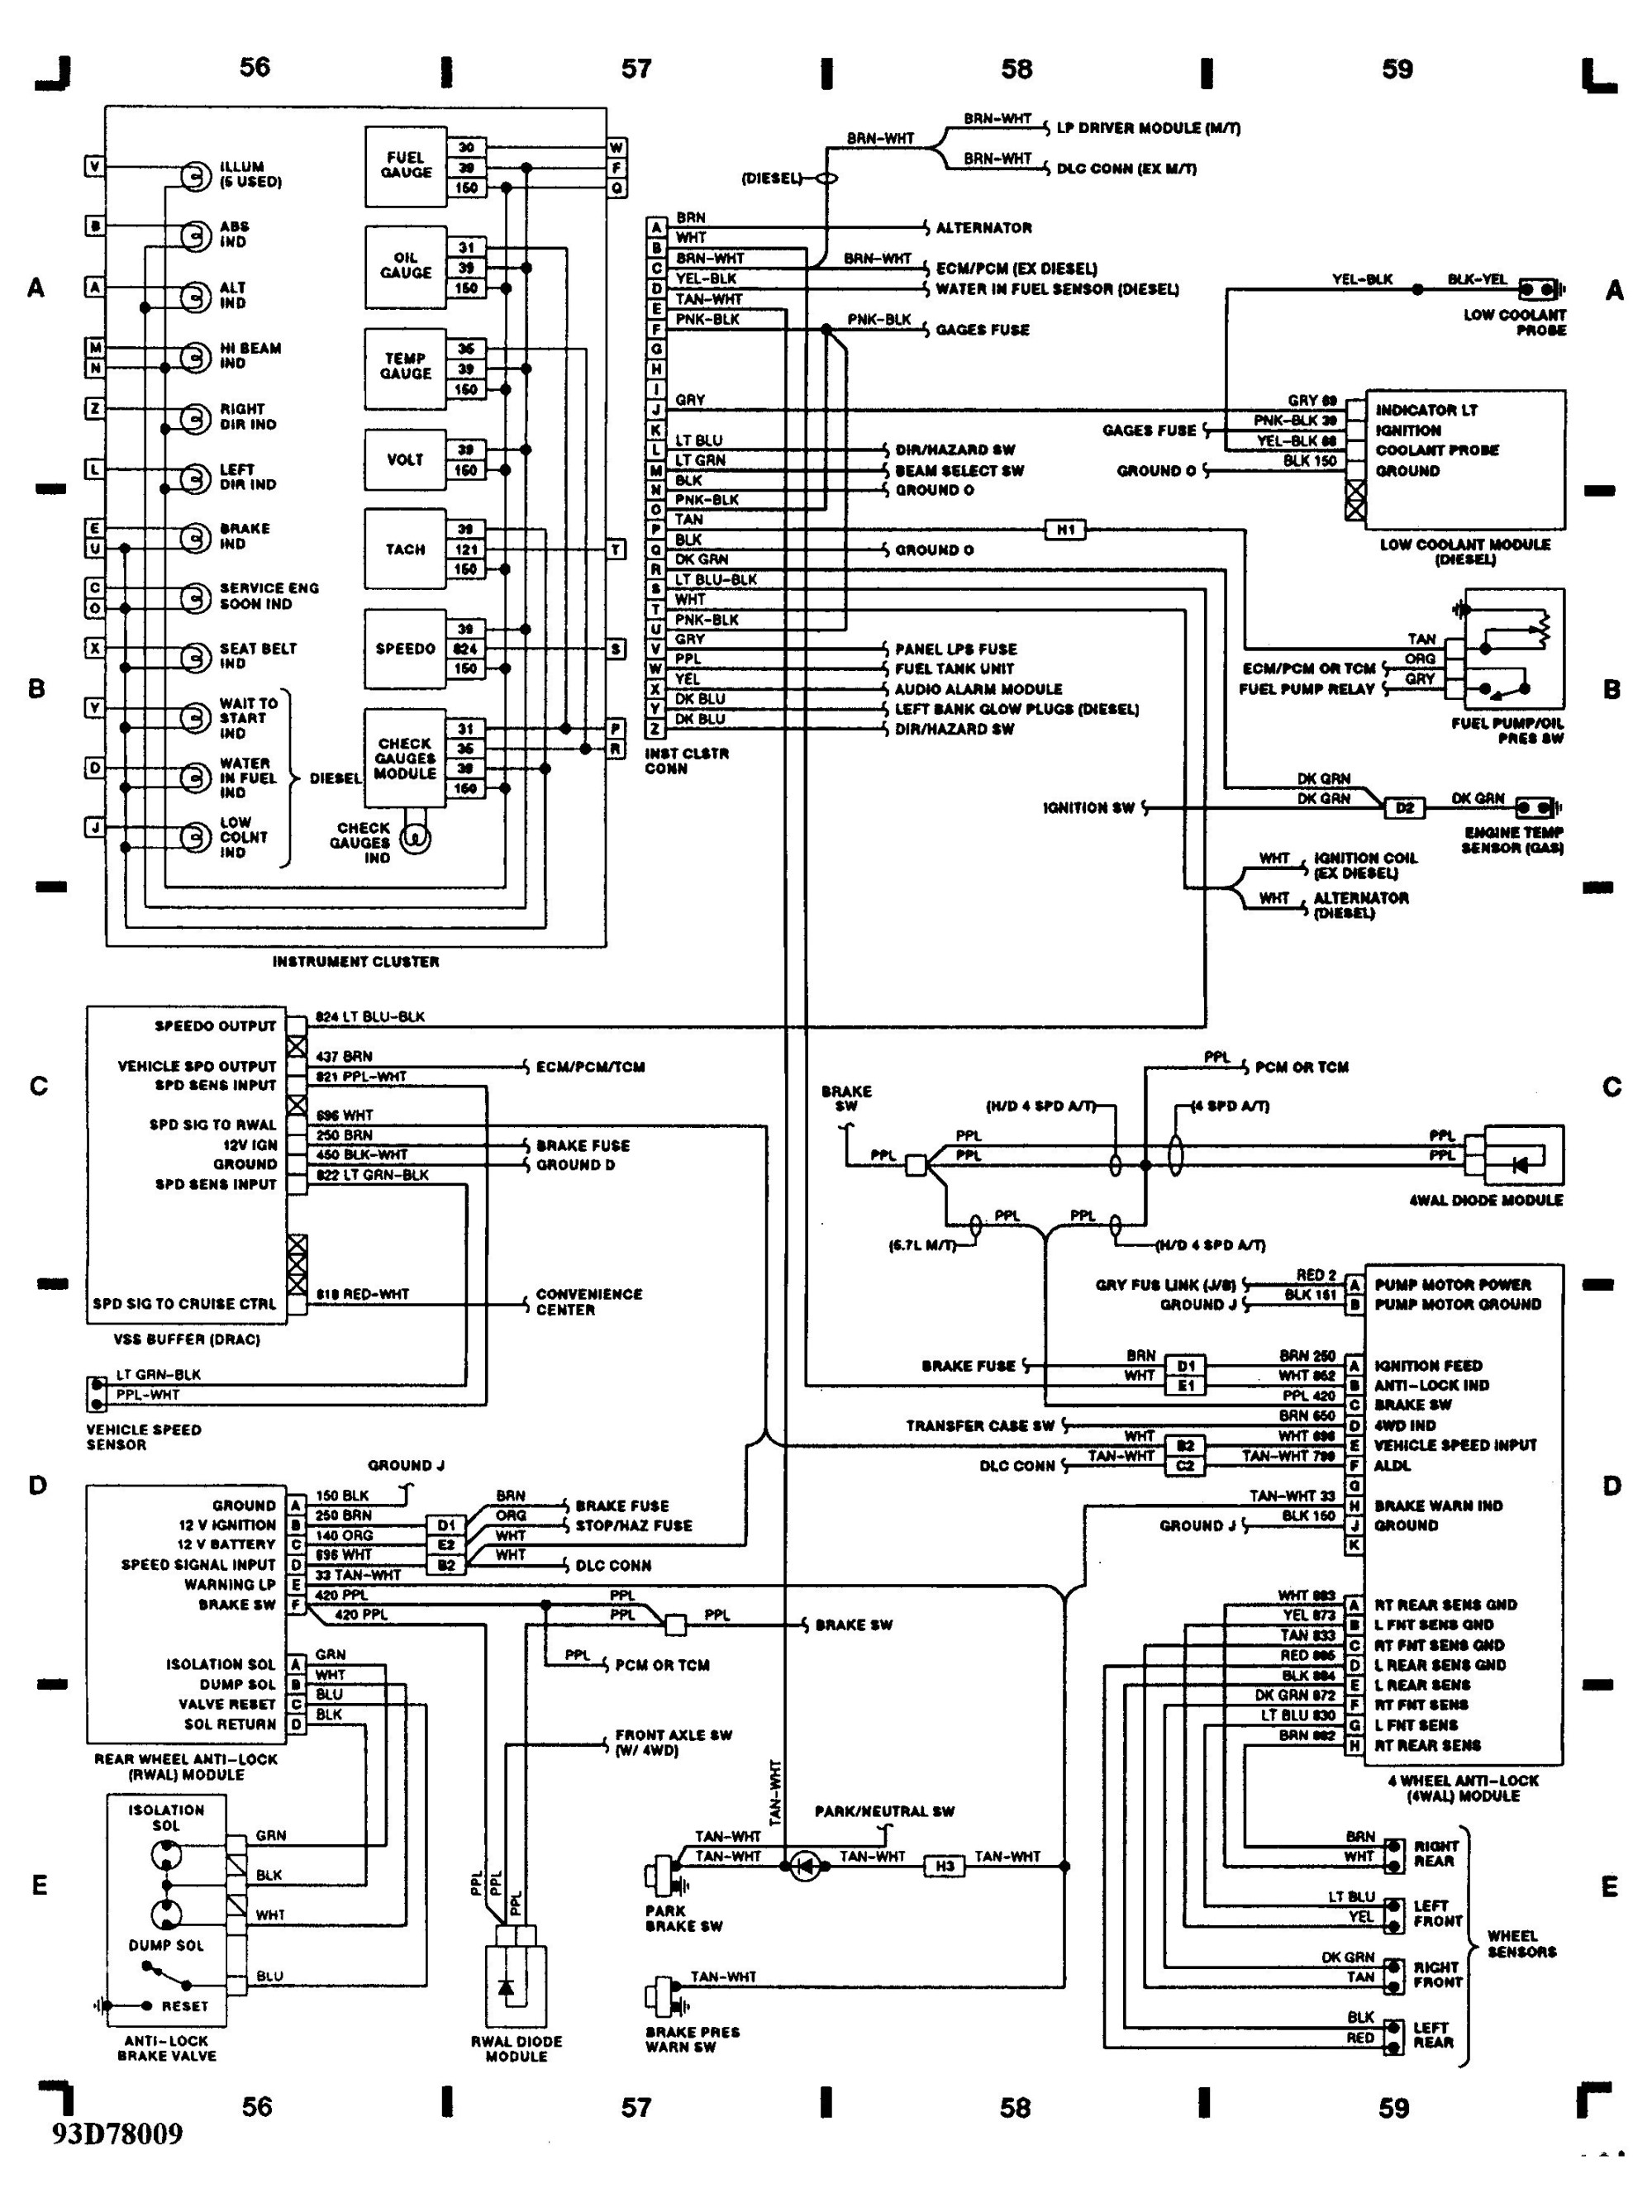 hight resolution of ford windstar 3 8 engine diagram wiring diagram used 1996 ford windstar engine diagram wiring diagram